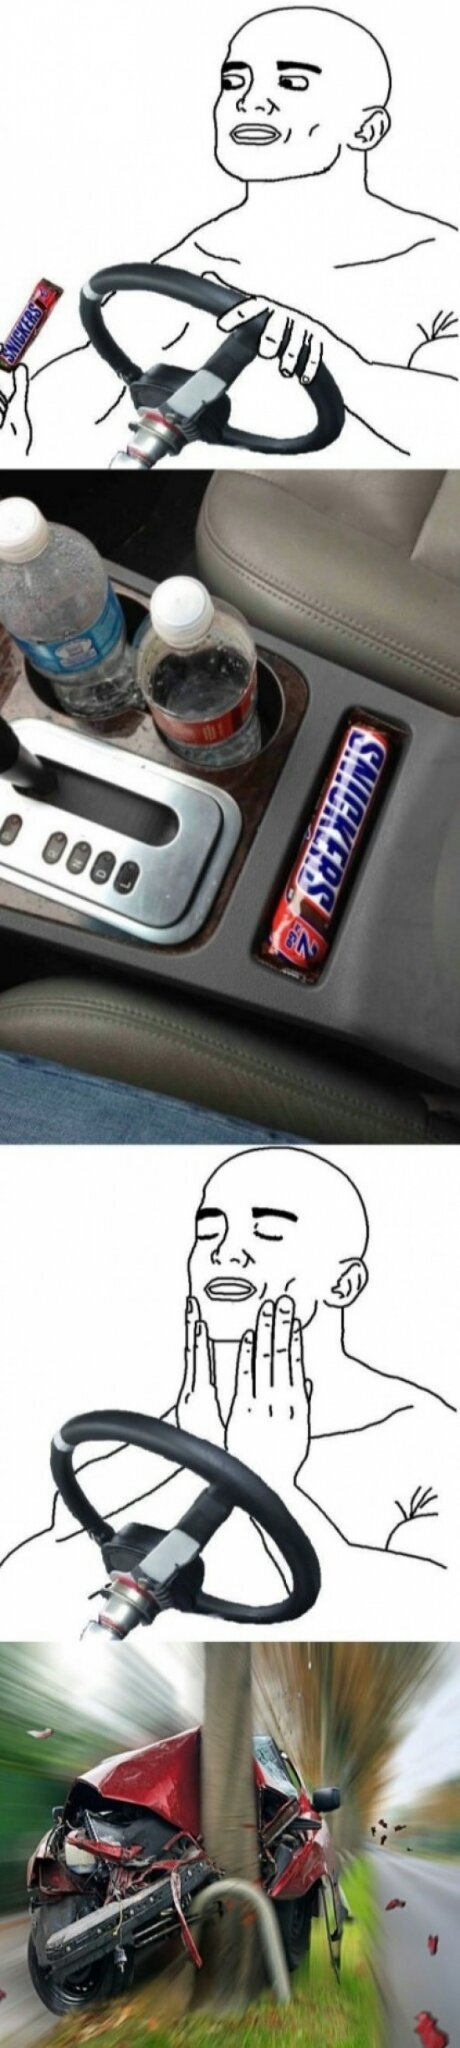 Eat a snickers - meme